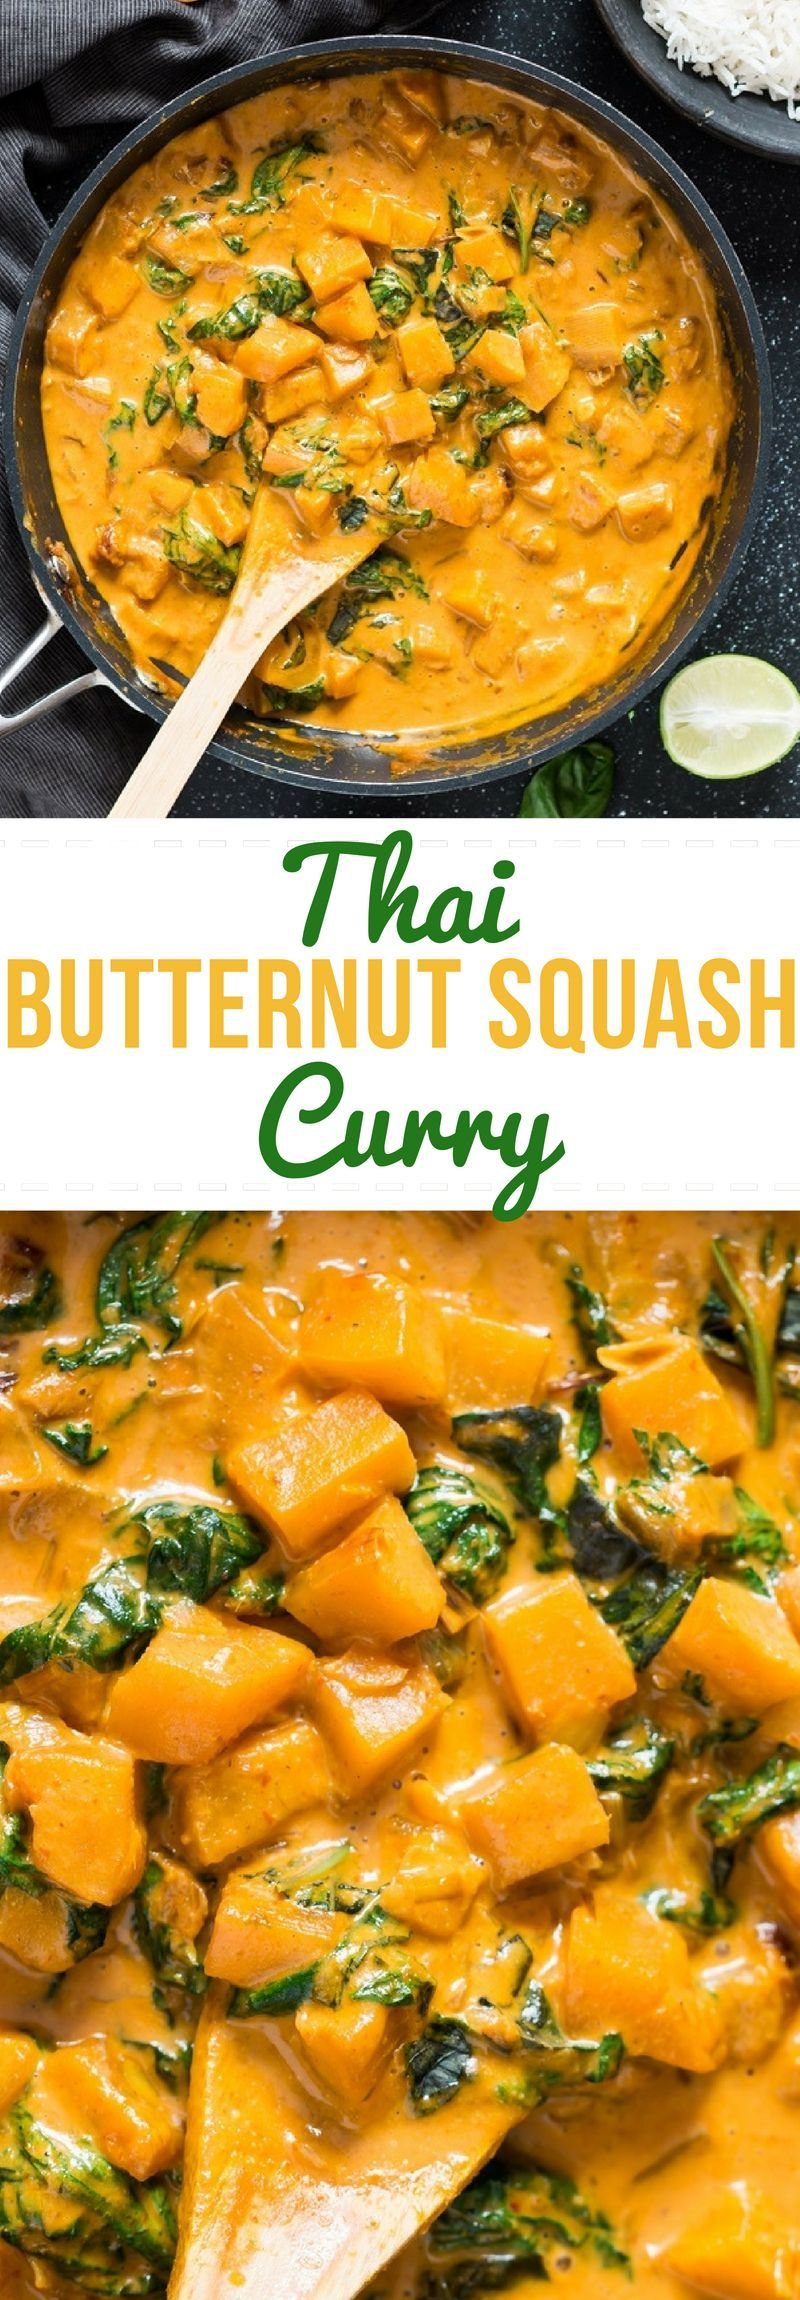 Butternut Squash Curry Thai butter squash curry also known as Fug-Tong-Gaeng-Dang is fresh tasting, easy to cook mid-week comforting curry. So satisfying and flavorful, your heart would want more on a cold Fall day. It's creamy, spicy and intensely flavoured dish.#curryThai butter squash curry al...